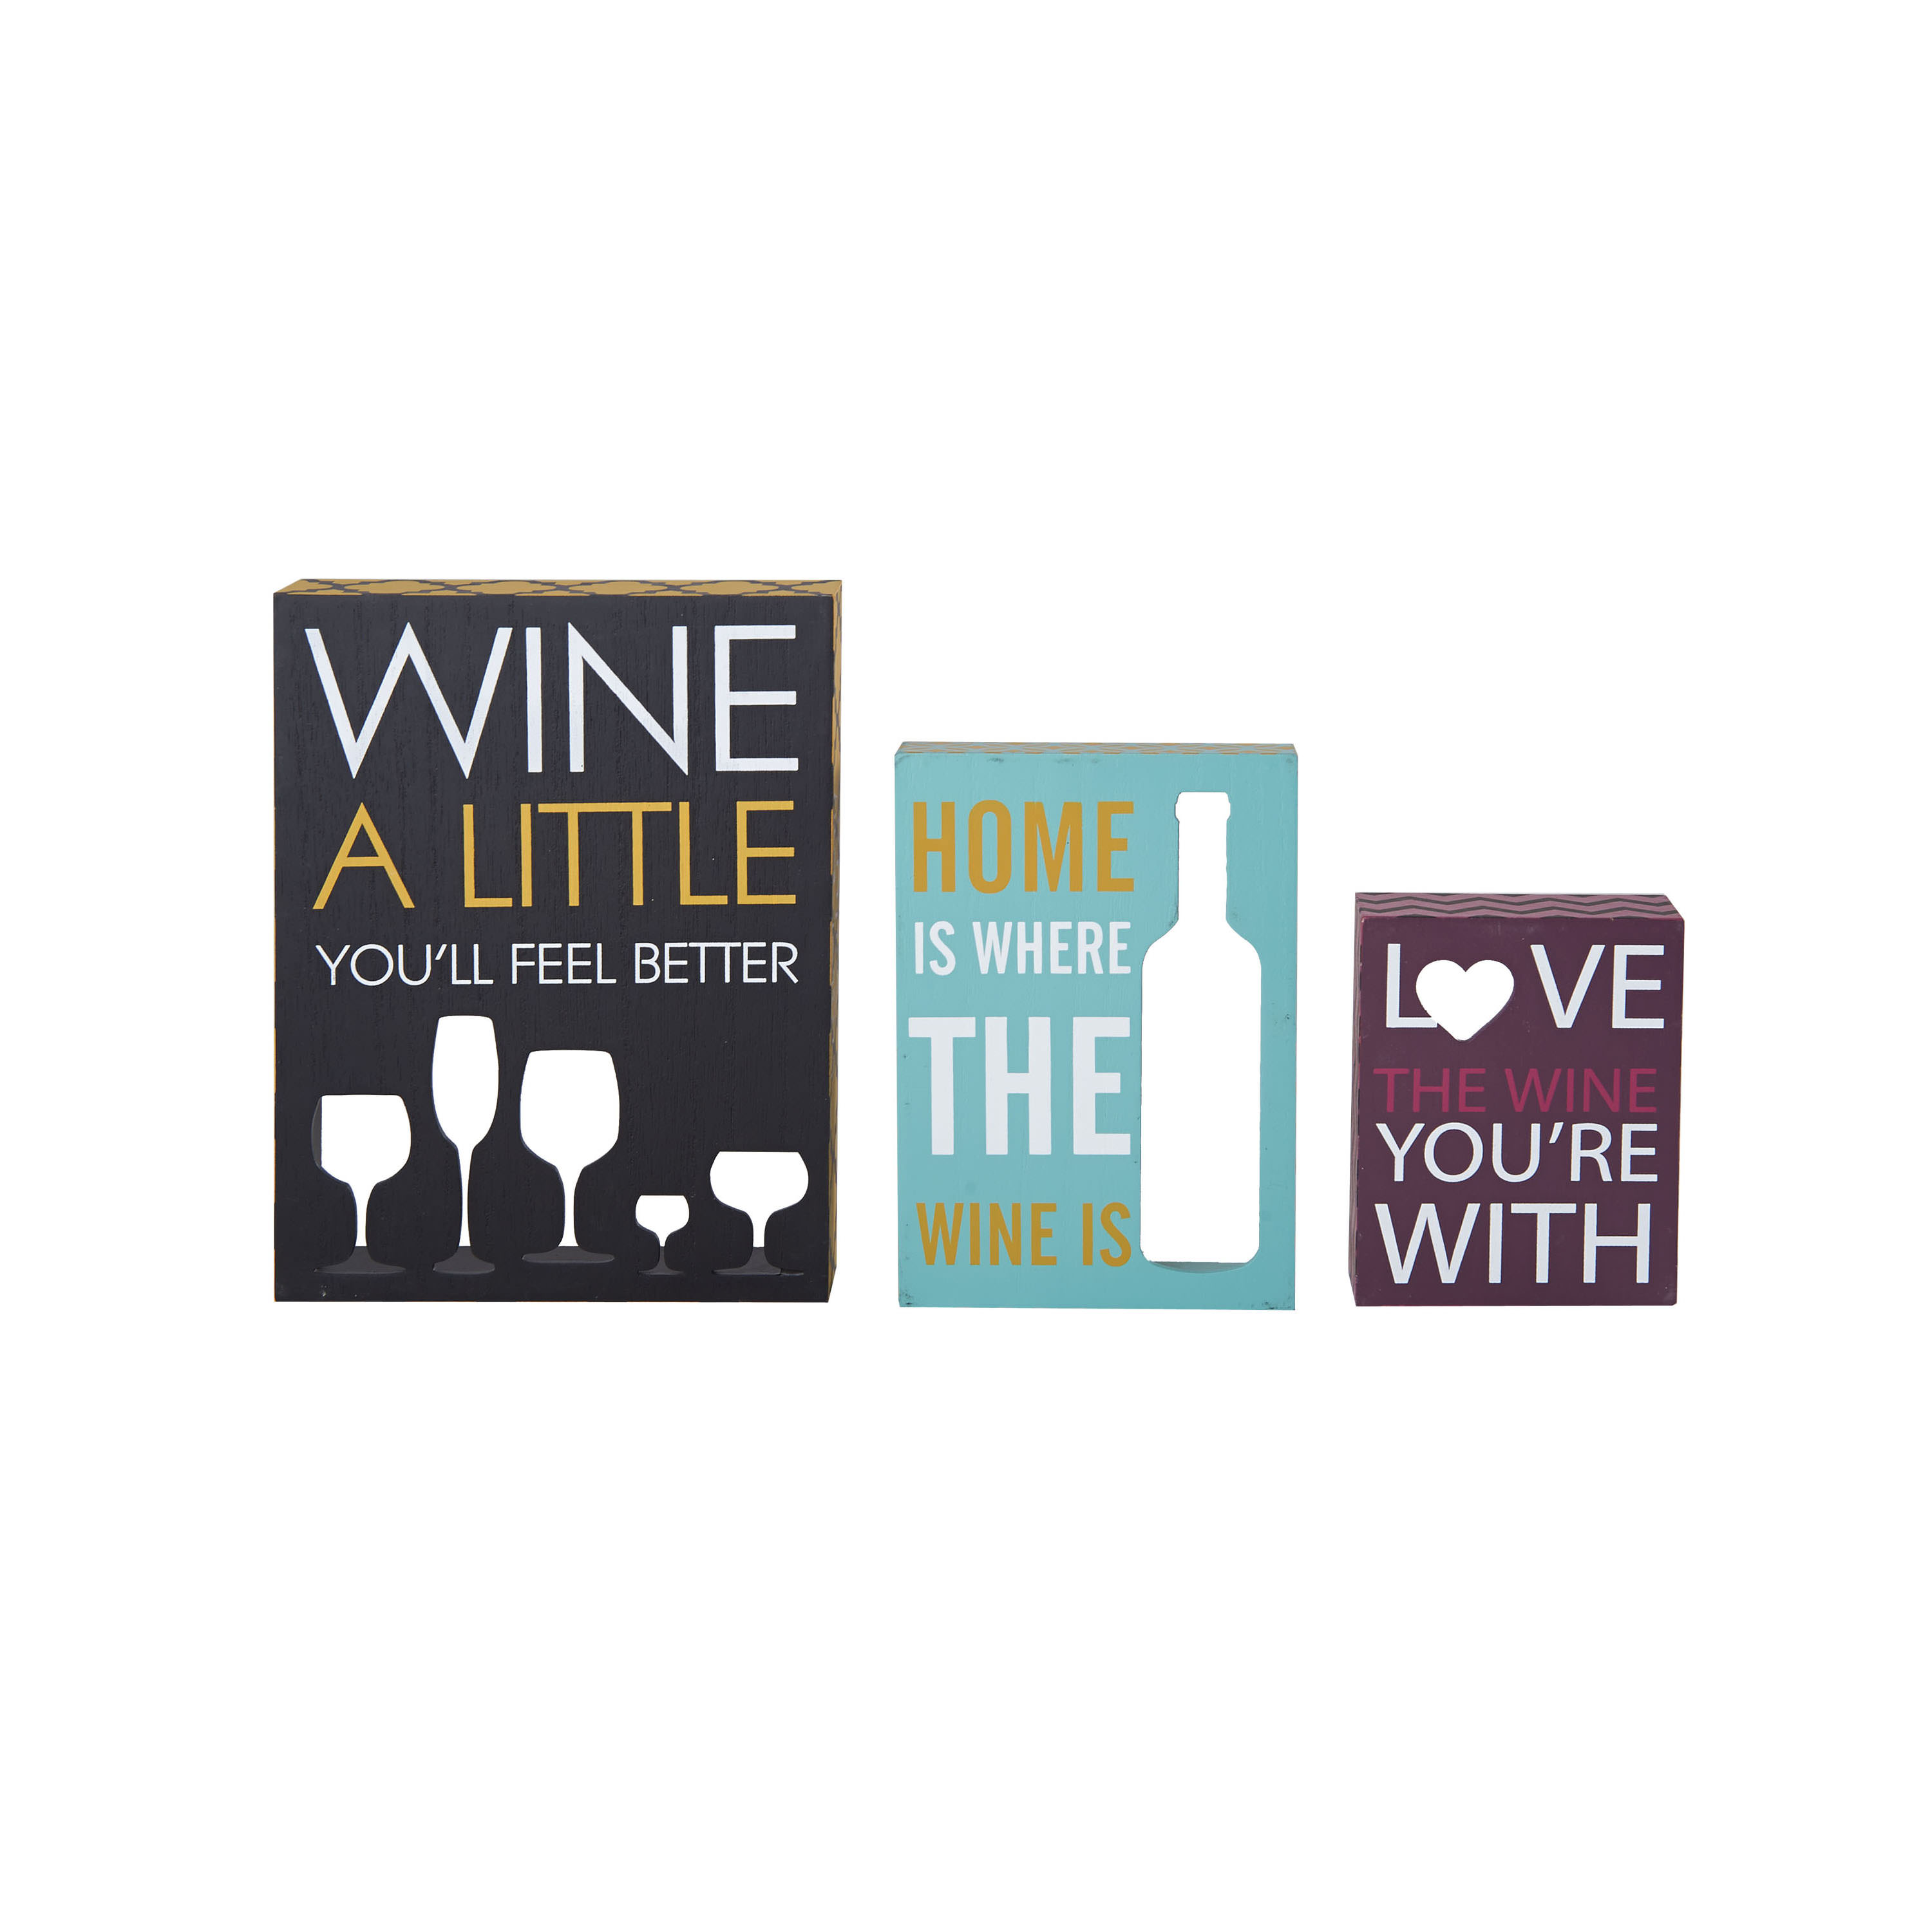 Elements 3 Vibrant Wine Cutout Box Signs in Assorted Sizes